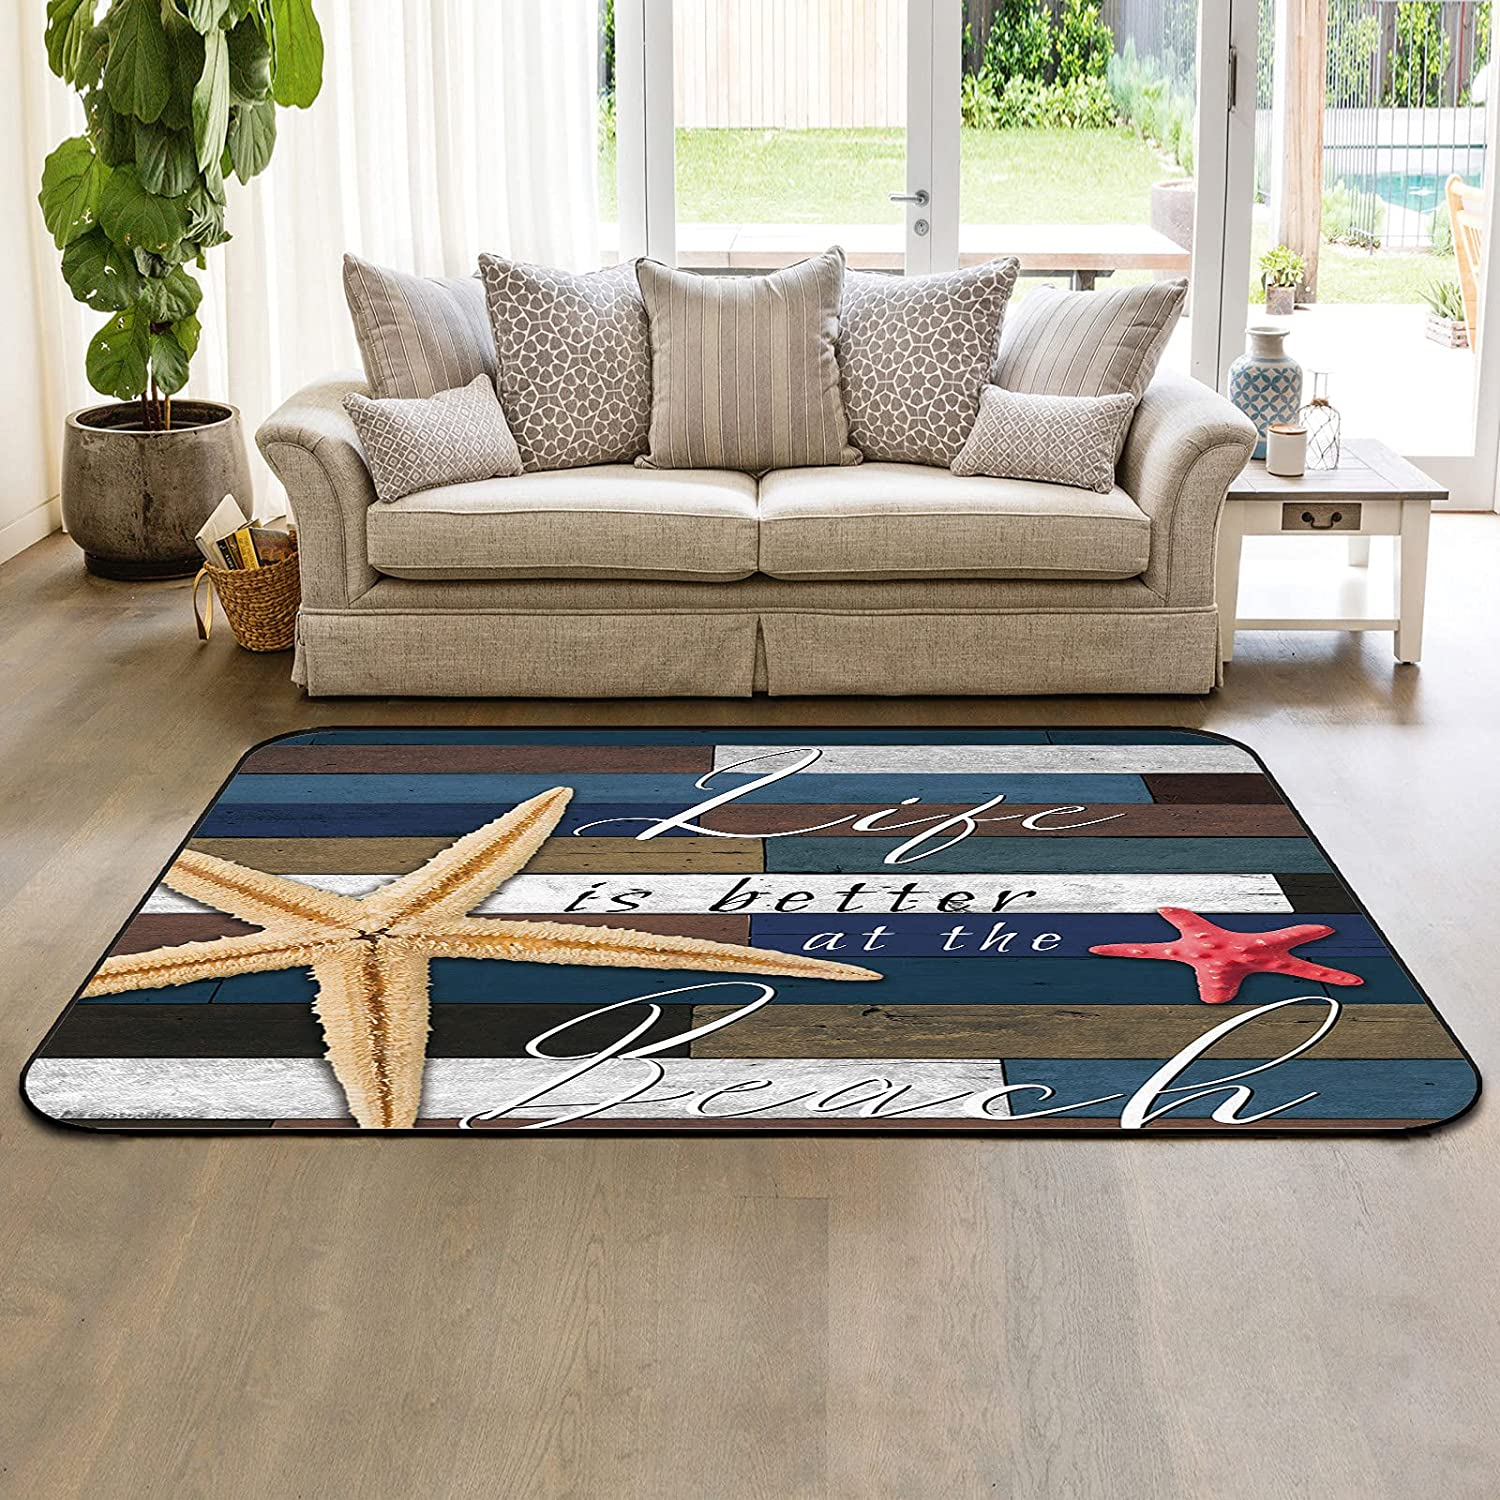 Non-Slip Area Rugs with Rubber Throw is Backing store Runner Super intense SALE Life